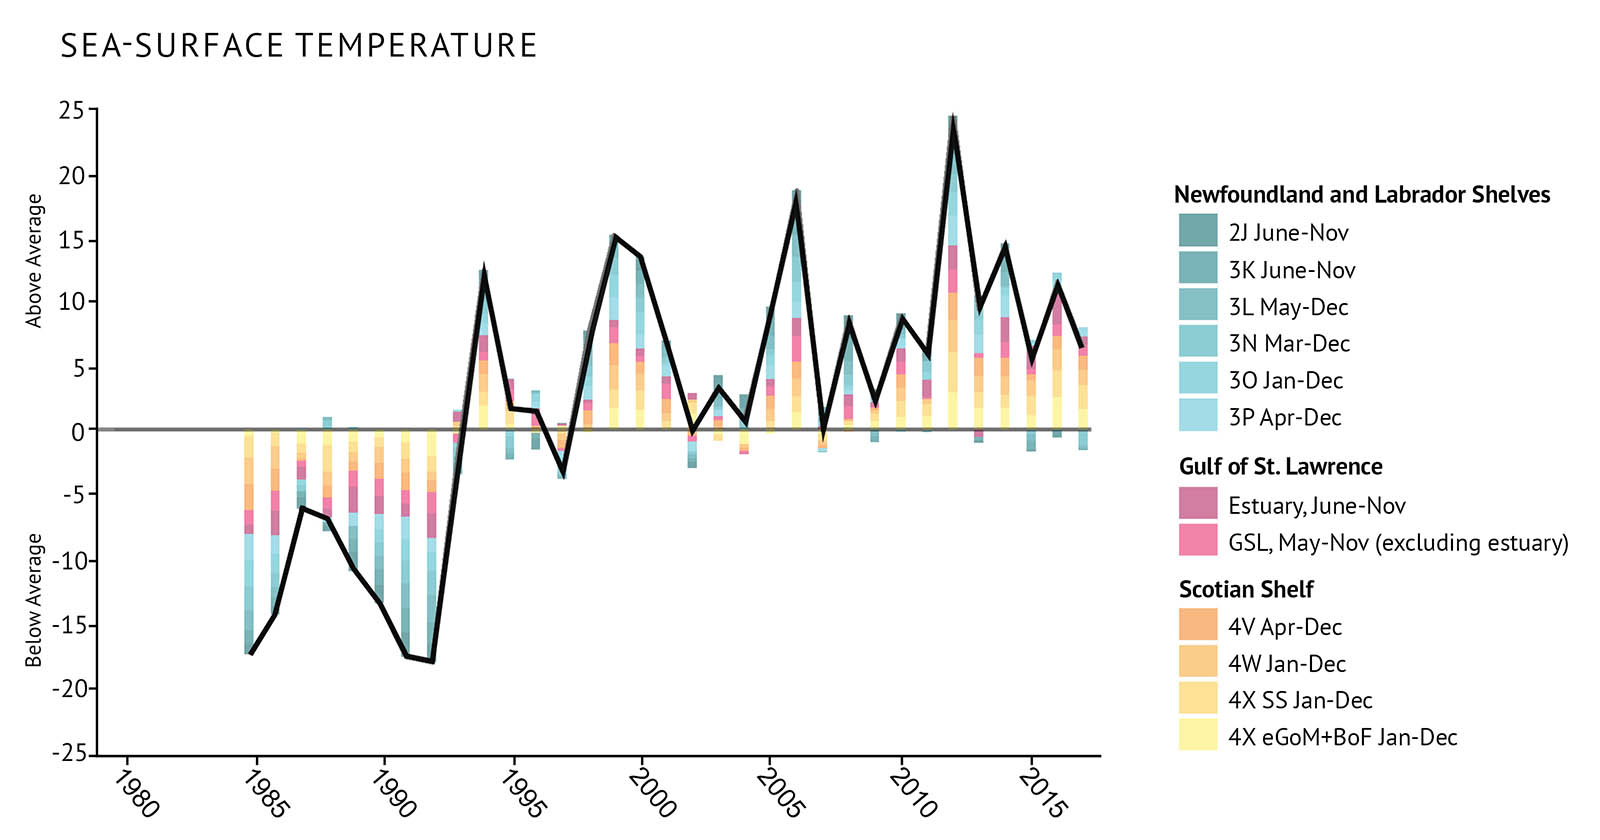 "Figure 3: Index of sea surface temperature for the Atlantic bioregions measured during ice-free times of the year. These values are relative to the 1985-2010 average. The black trend line represents the combined anomalies for all areas (eGoM: eastern Gulf of Maine; BoF: Bay of Fundy; see Figure 1 for NAFO Divisions). Above average trends are warm conditions. A combined line and bar graph illustrates the fluctuations in sea surface temperature between 1985 and 2017 for the three Atlantic bioregions. Text above the graph says ""Sea-surface temperature"". The vertical axis at left shows numbers from -25 to 25 in increments of 5 with a thin black zero-line extending across the graph. Text left of the vertical axis and above the zero-line says ""above average"" and text under the zero-line says ""below average"". The horizontal axis shows years between 1980 to 2015 in 5 year increments. A legend sits at right showing the colours for areas within each bioregion illustrated as stacked bars on the graph. Areas within the Newfoundland and Labrador Shelves are in shades of blue, areas within the Gulf of St. Lawrence are in shades of pink, and areas within the Scotian Shelf are in shades of orange. A thick black line extends between the vertical and horizontal axes showing the combined trend of temperature for all areas, with temperatures going from below average in the late 1980s and early 1990s to generally being above average in the 1990s. The trend is consistent in most areas."